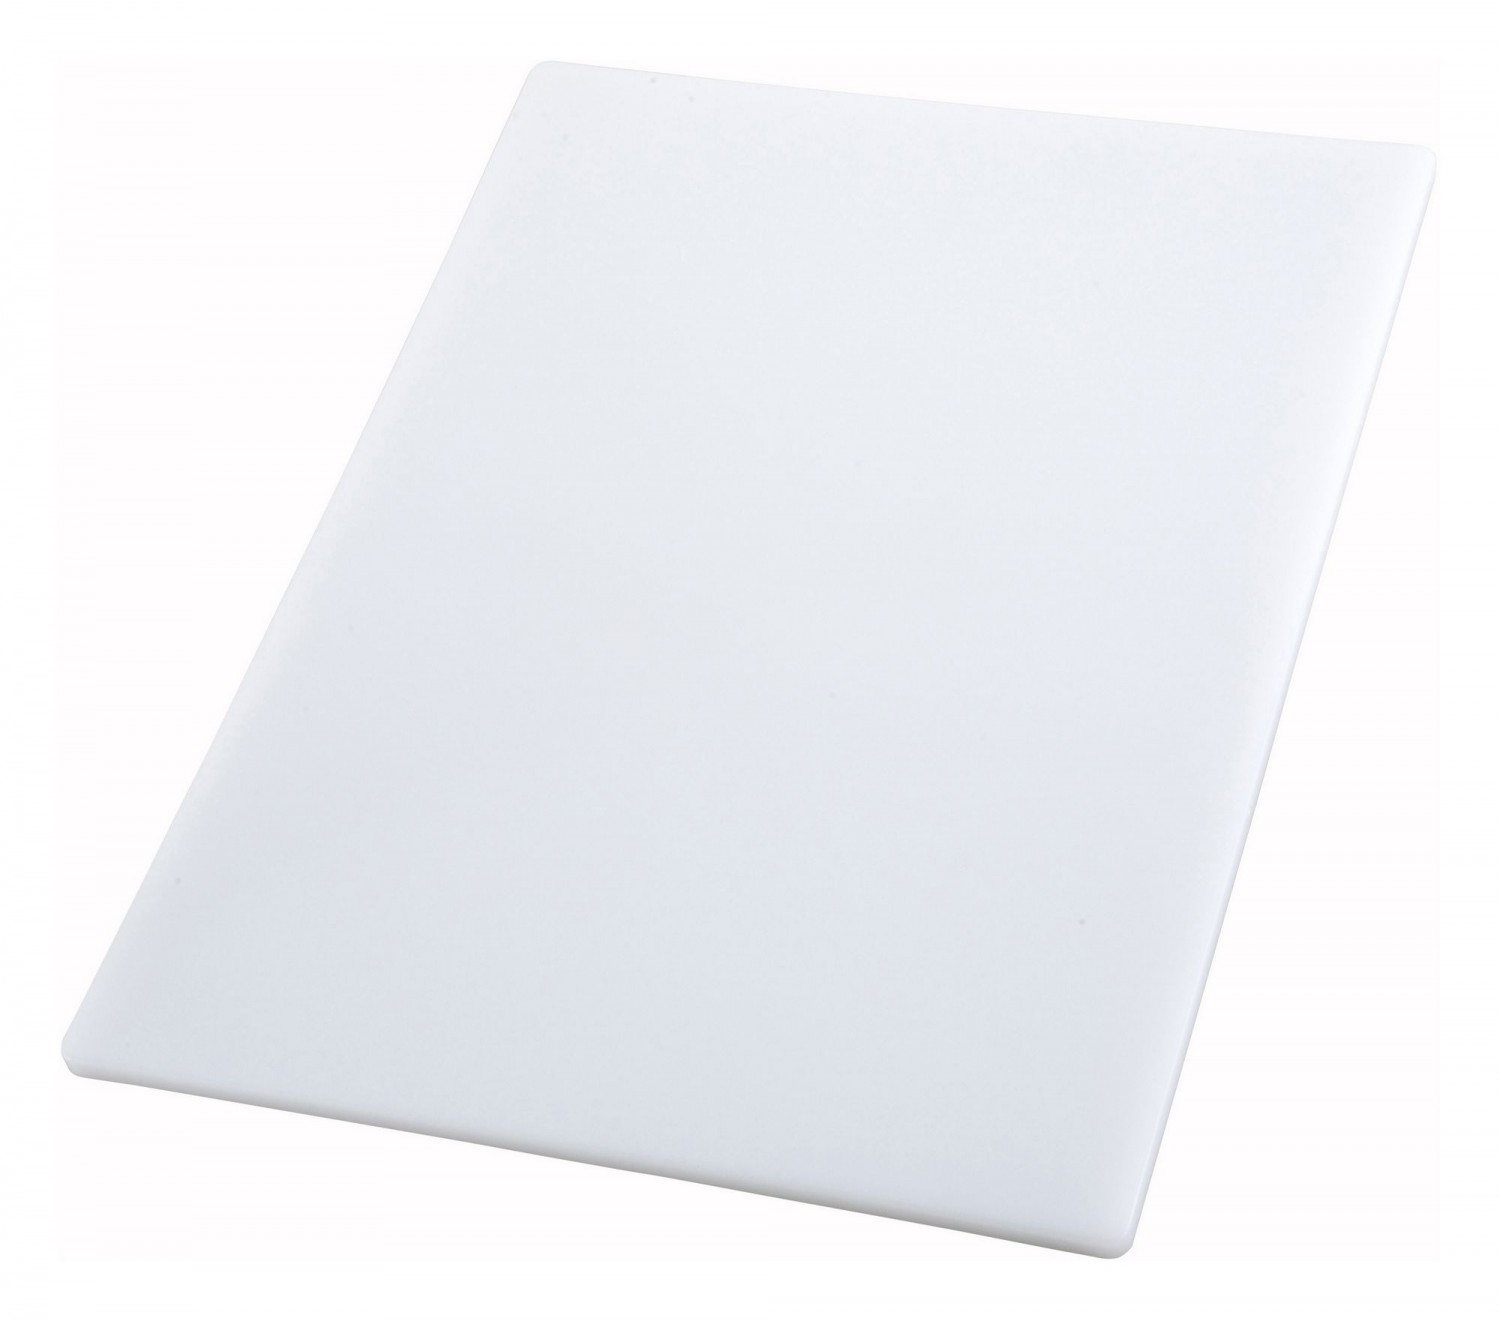 Winco White 18 X 30 Plastic Cutting Board Cutting Board